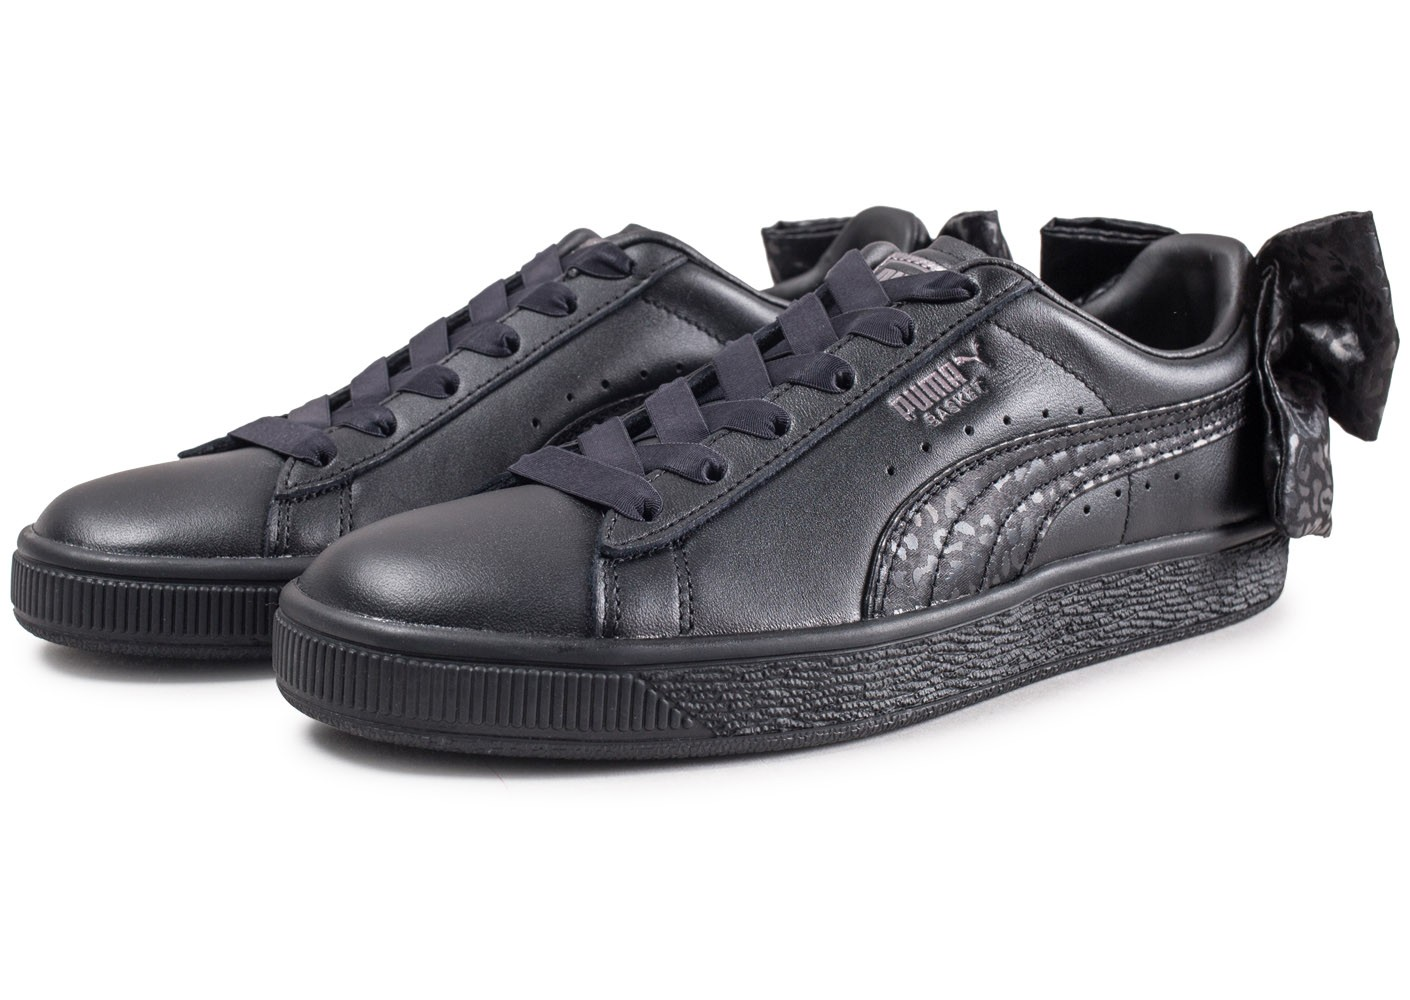 new style 78cd0 f51c8 ... Chaussures Puma Suede Bow Animal noire femme vue intérieure ...